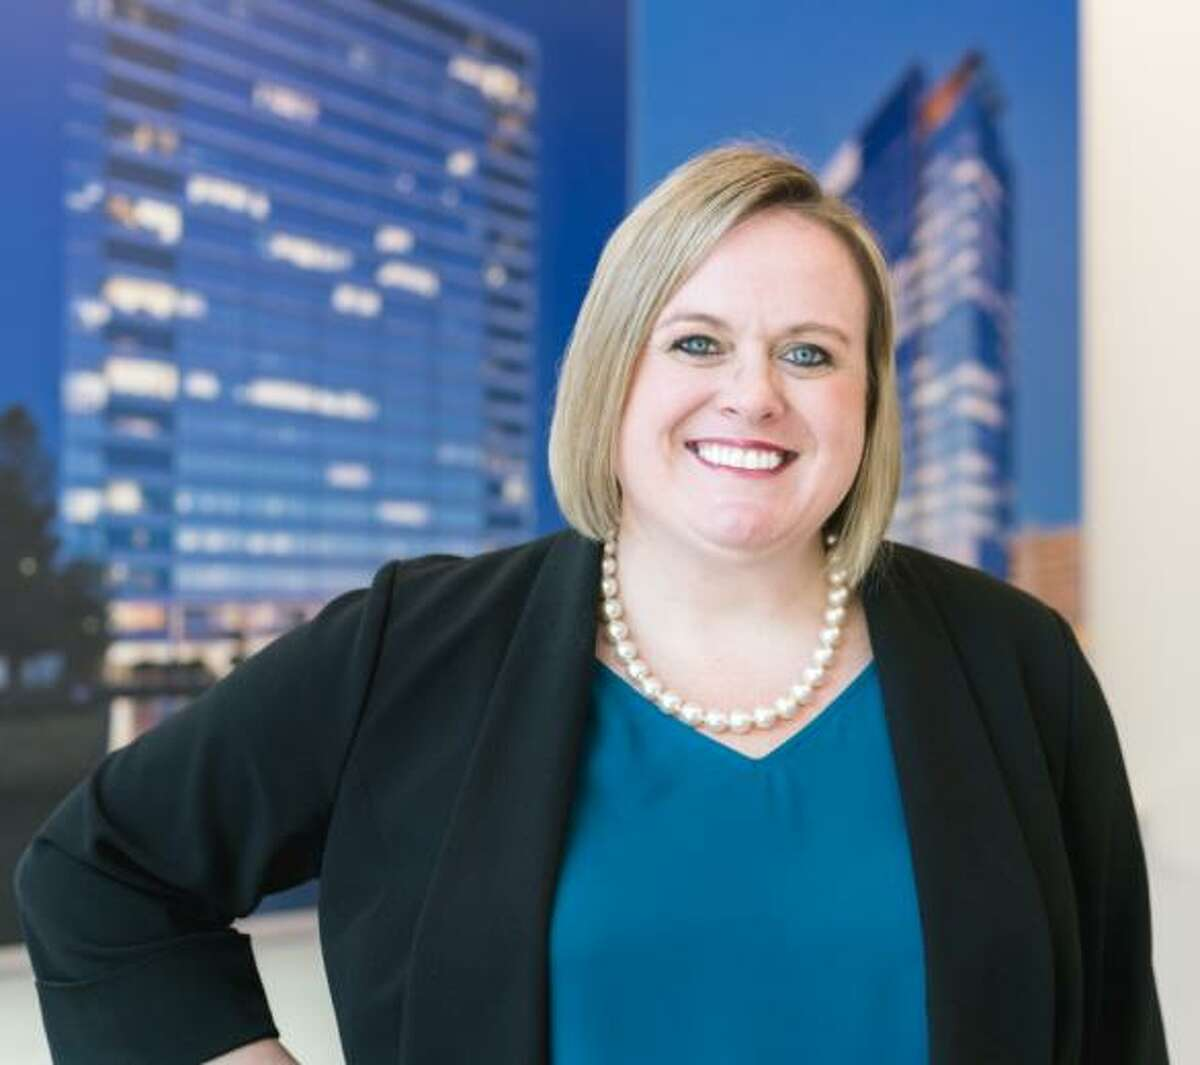 Crystal McDonald has joined Kirksey as chief financial officer and vice president.McDonald brings 15 years of accounting experience in the architectural industry. McDonald�'s experience includes system implementation and developing internal controls, financial planning and budgeting.